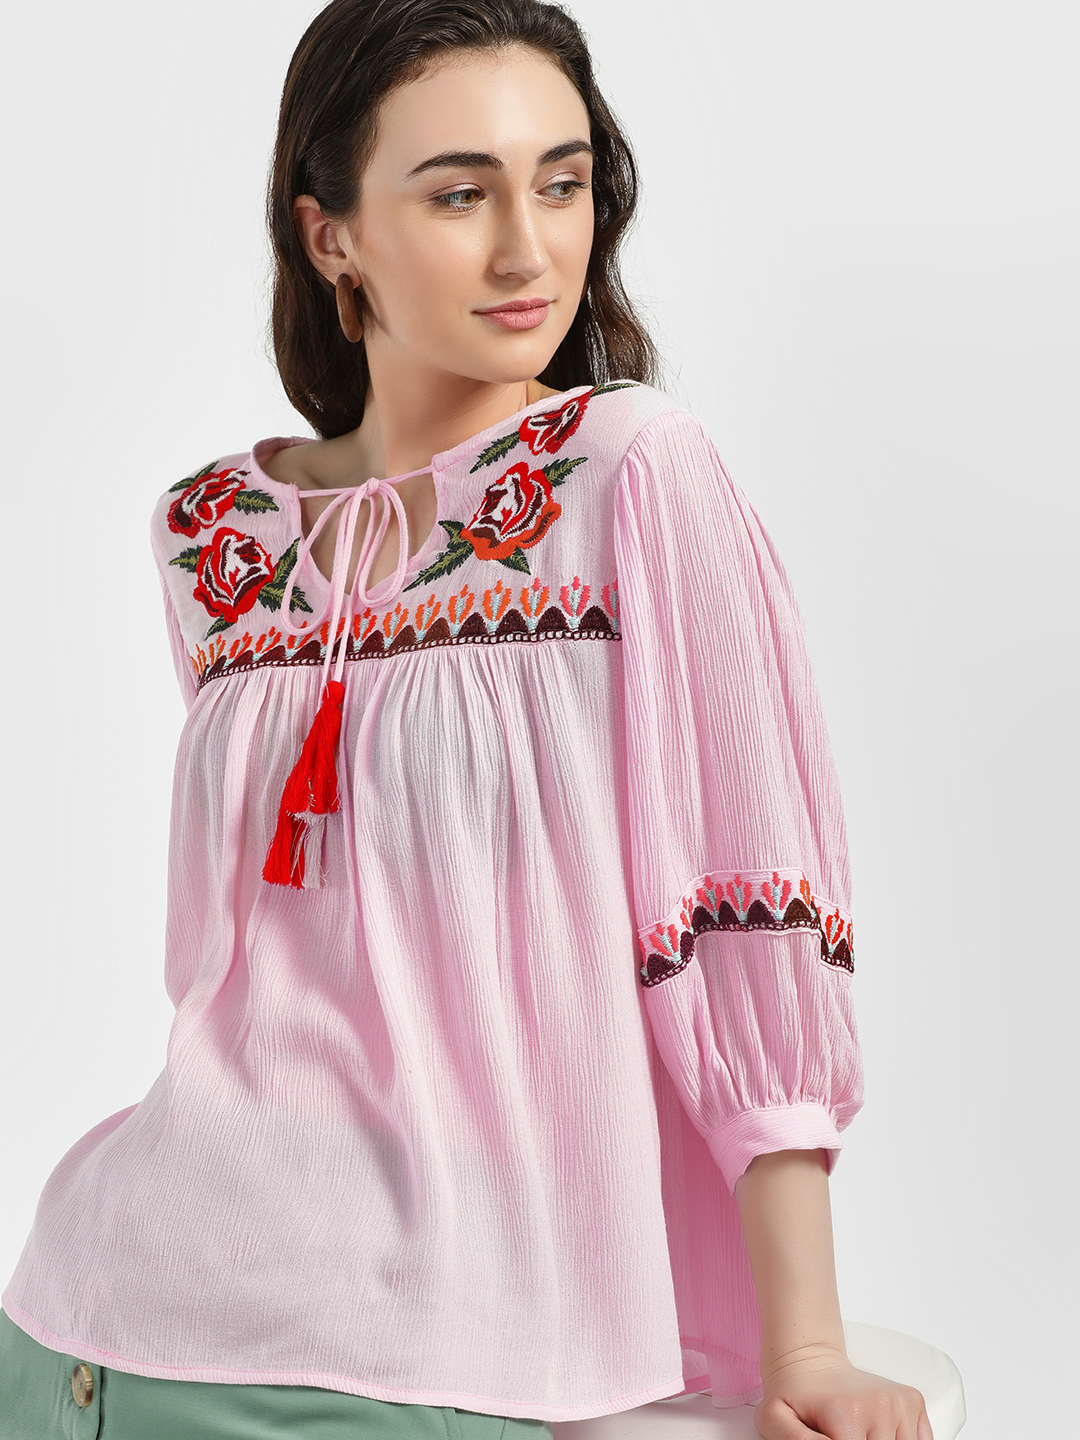 Rena Love Pink Floral Embroidered Flared Blouse 1